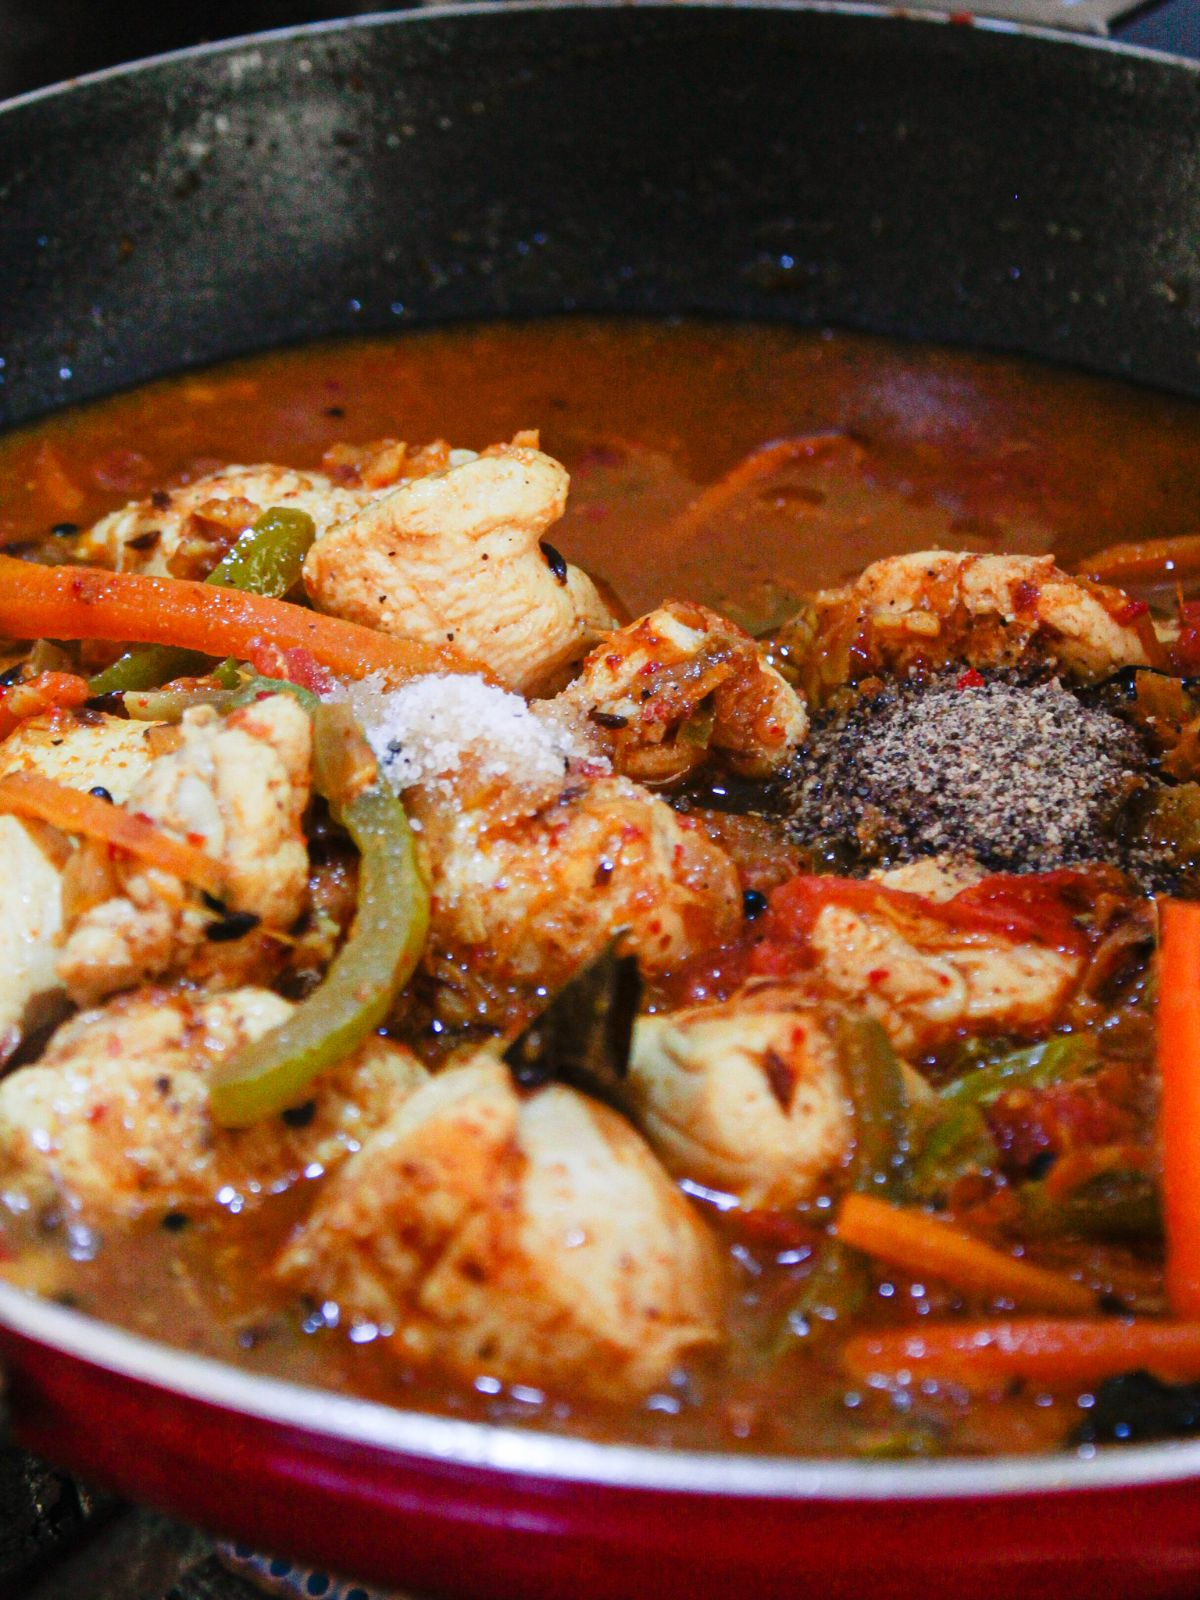 Spices on top of chicken jalfrezi being cooked in red skillet